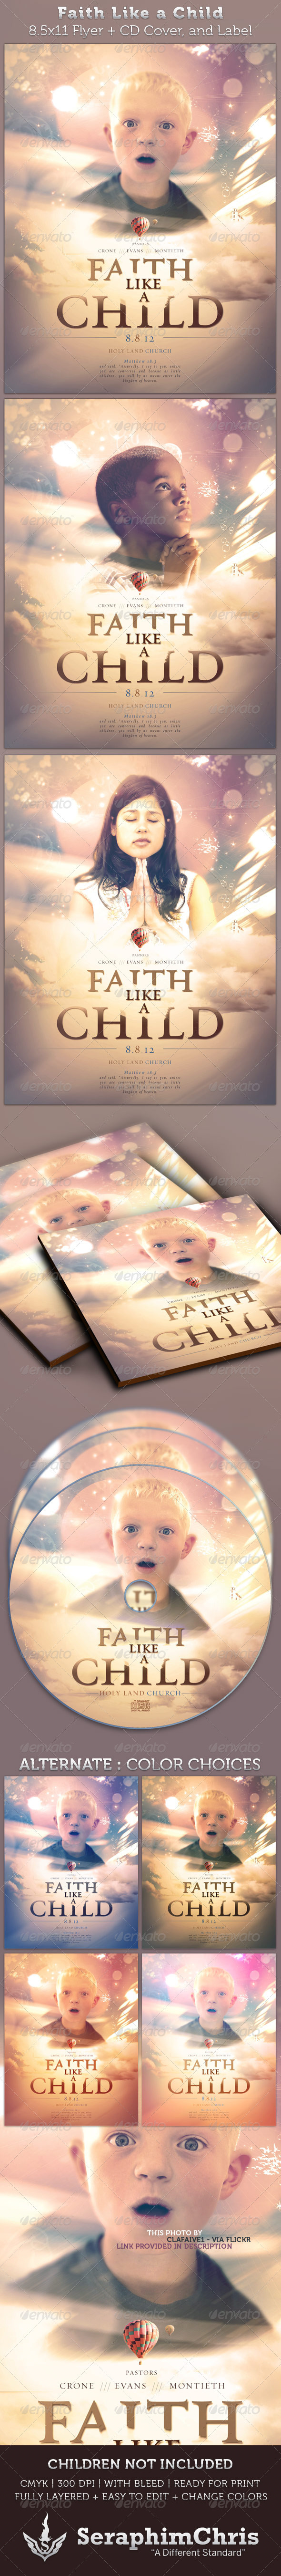 Graphic River Faith Like A Child Full Page Flyer and CD Cover Print Templates -  Flyers  Church 2075982